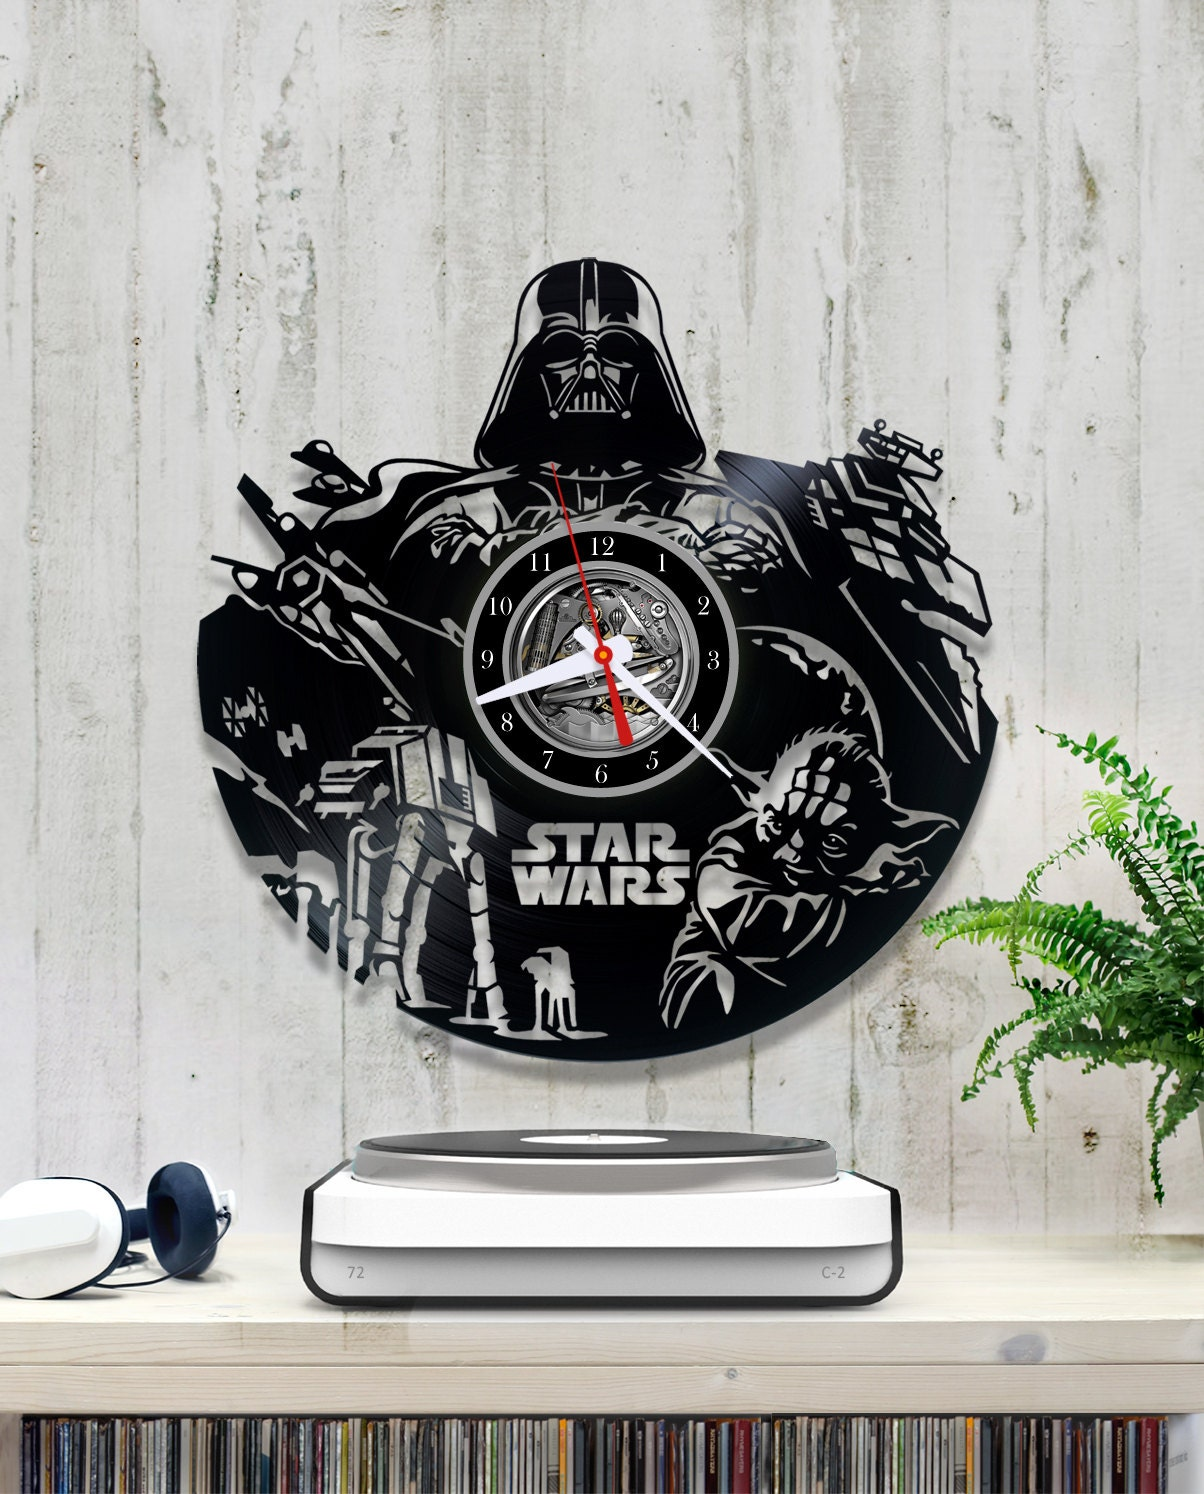 Star Wars Vinyl Clock Darth Vader Wall Vinyl Clock V043 Clock